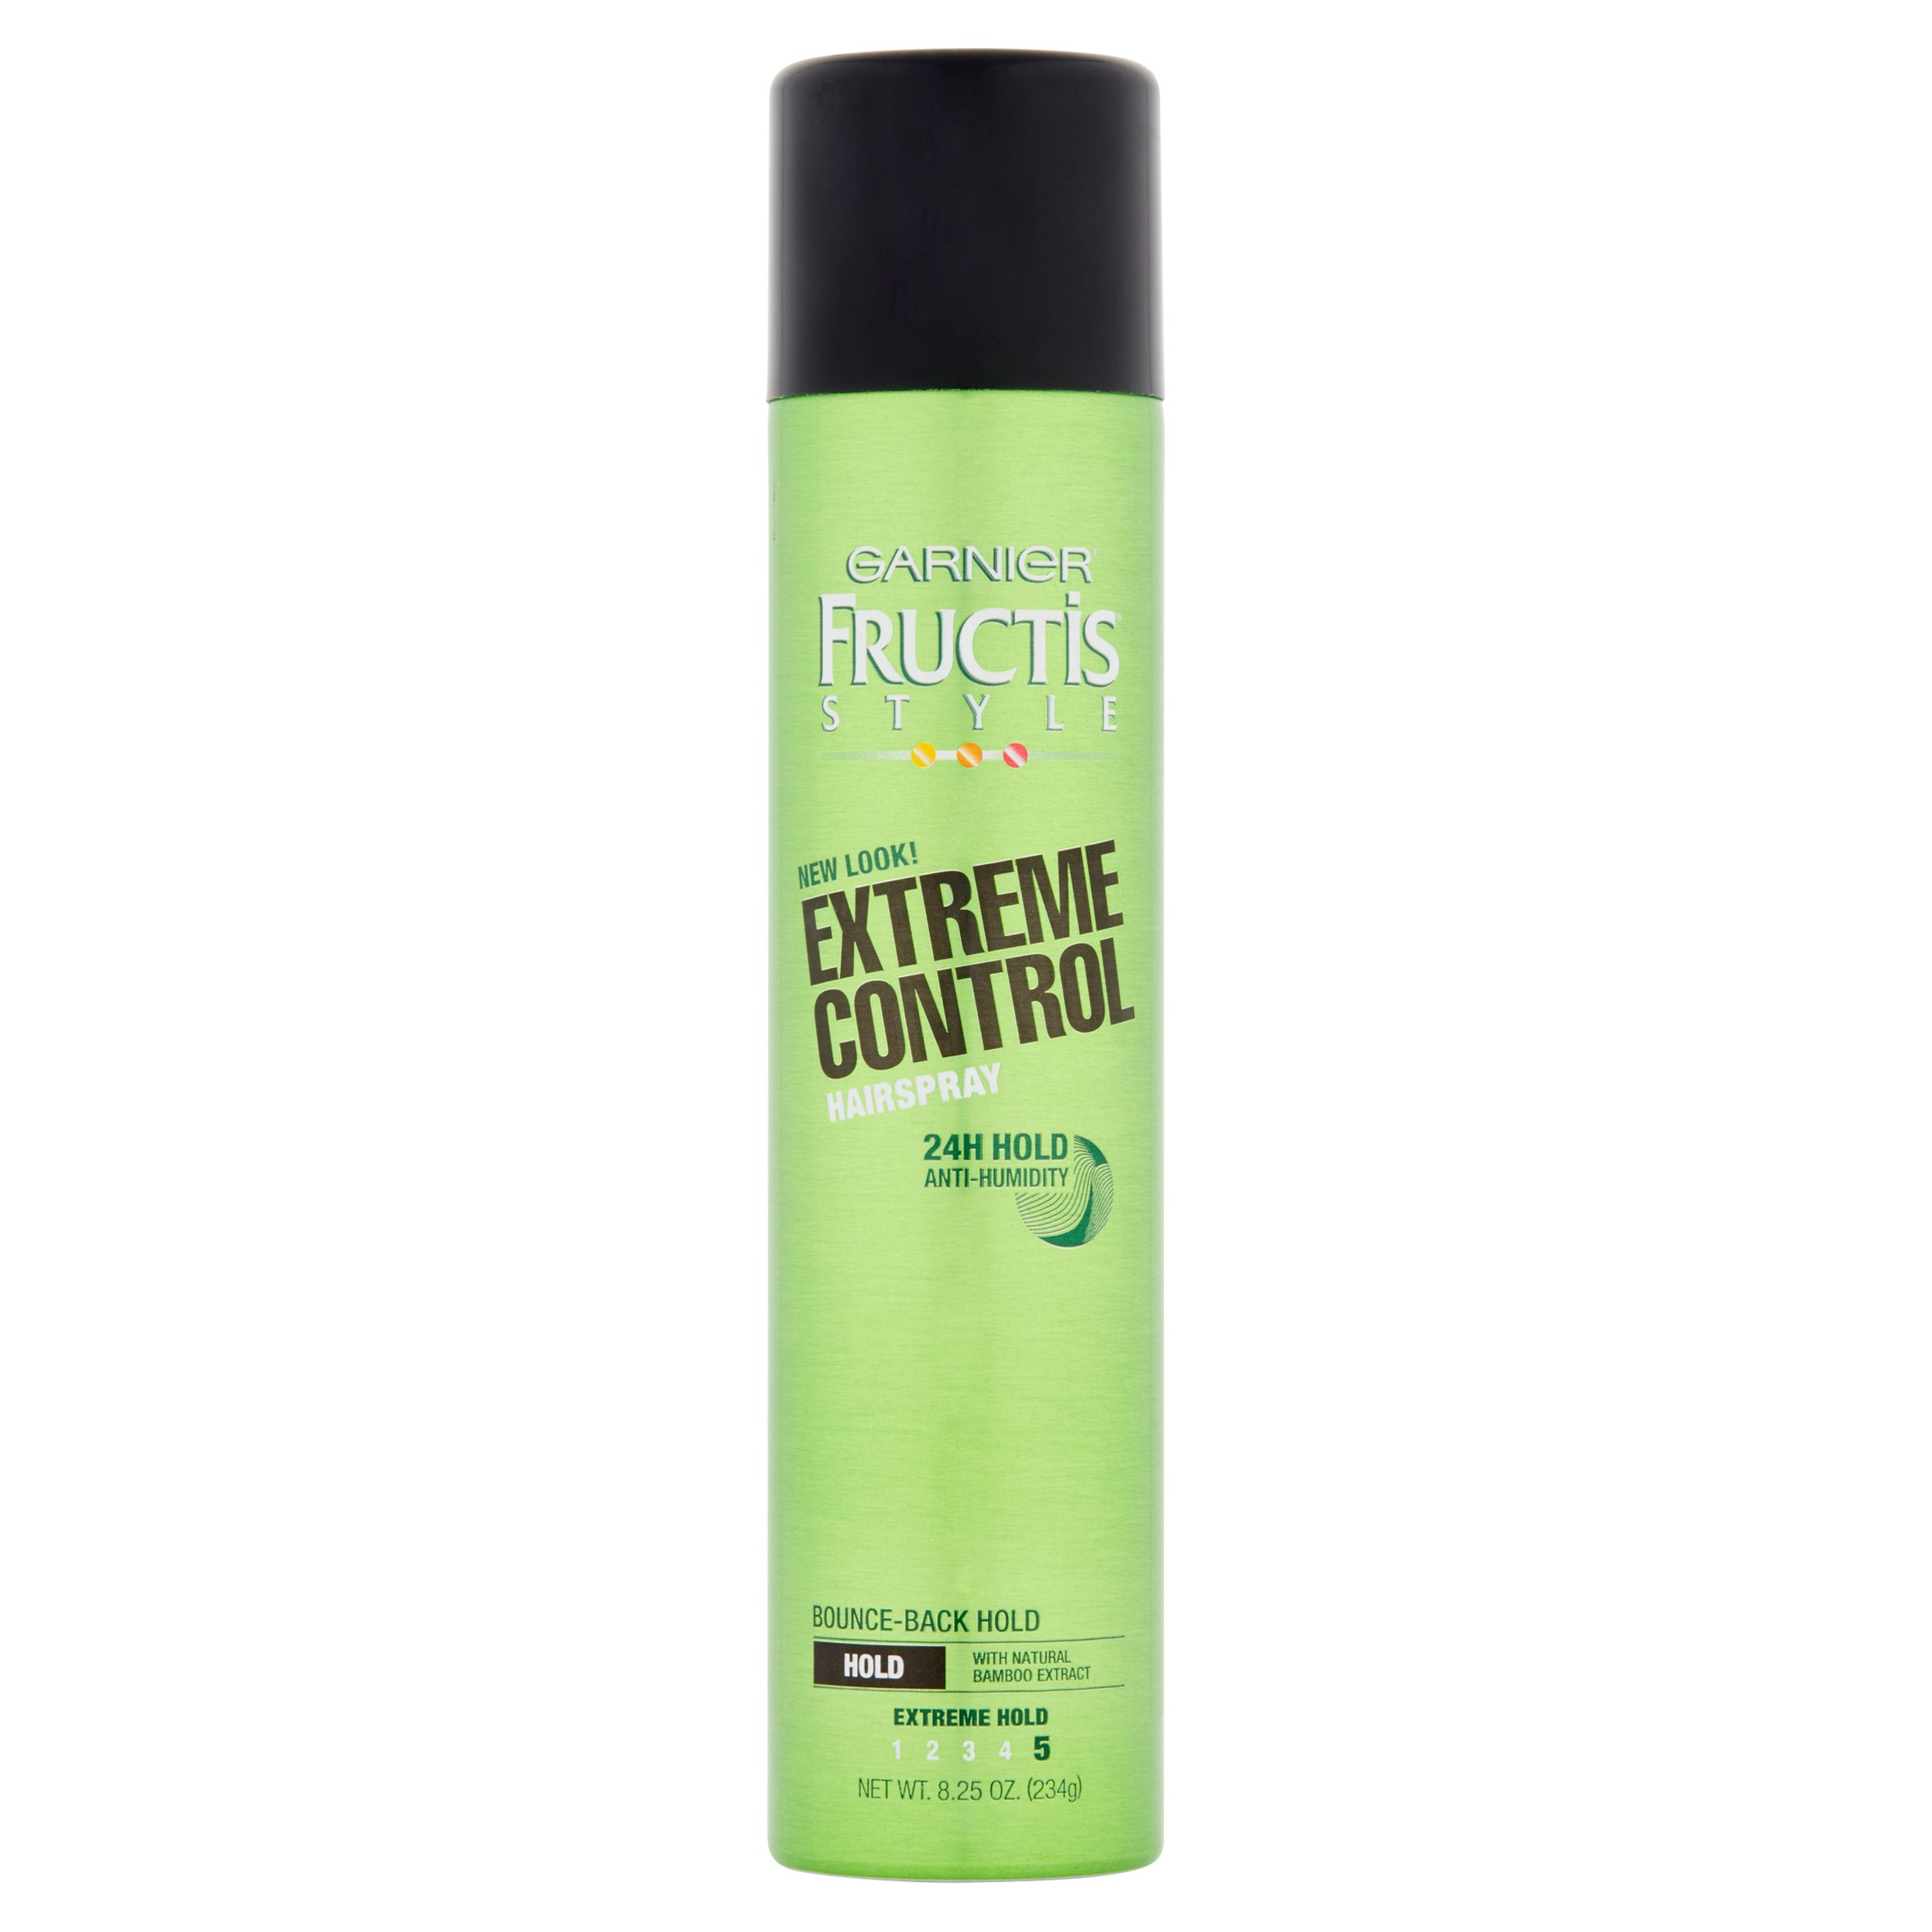 Garnier Fructis Style Extreme Control Anti-Humidity Hairspray 8.25 OZ